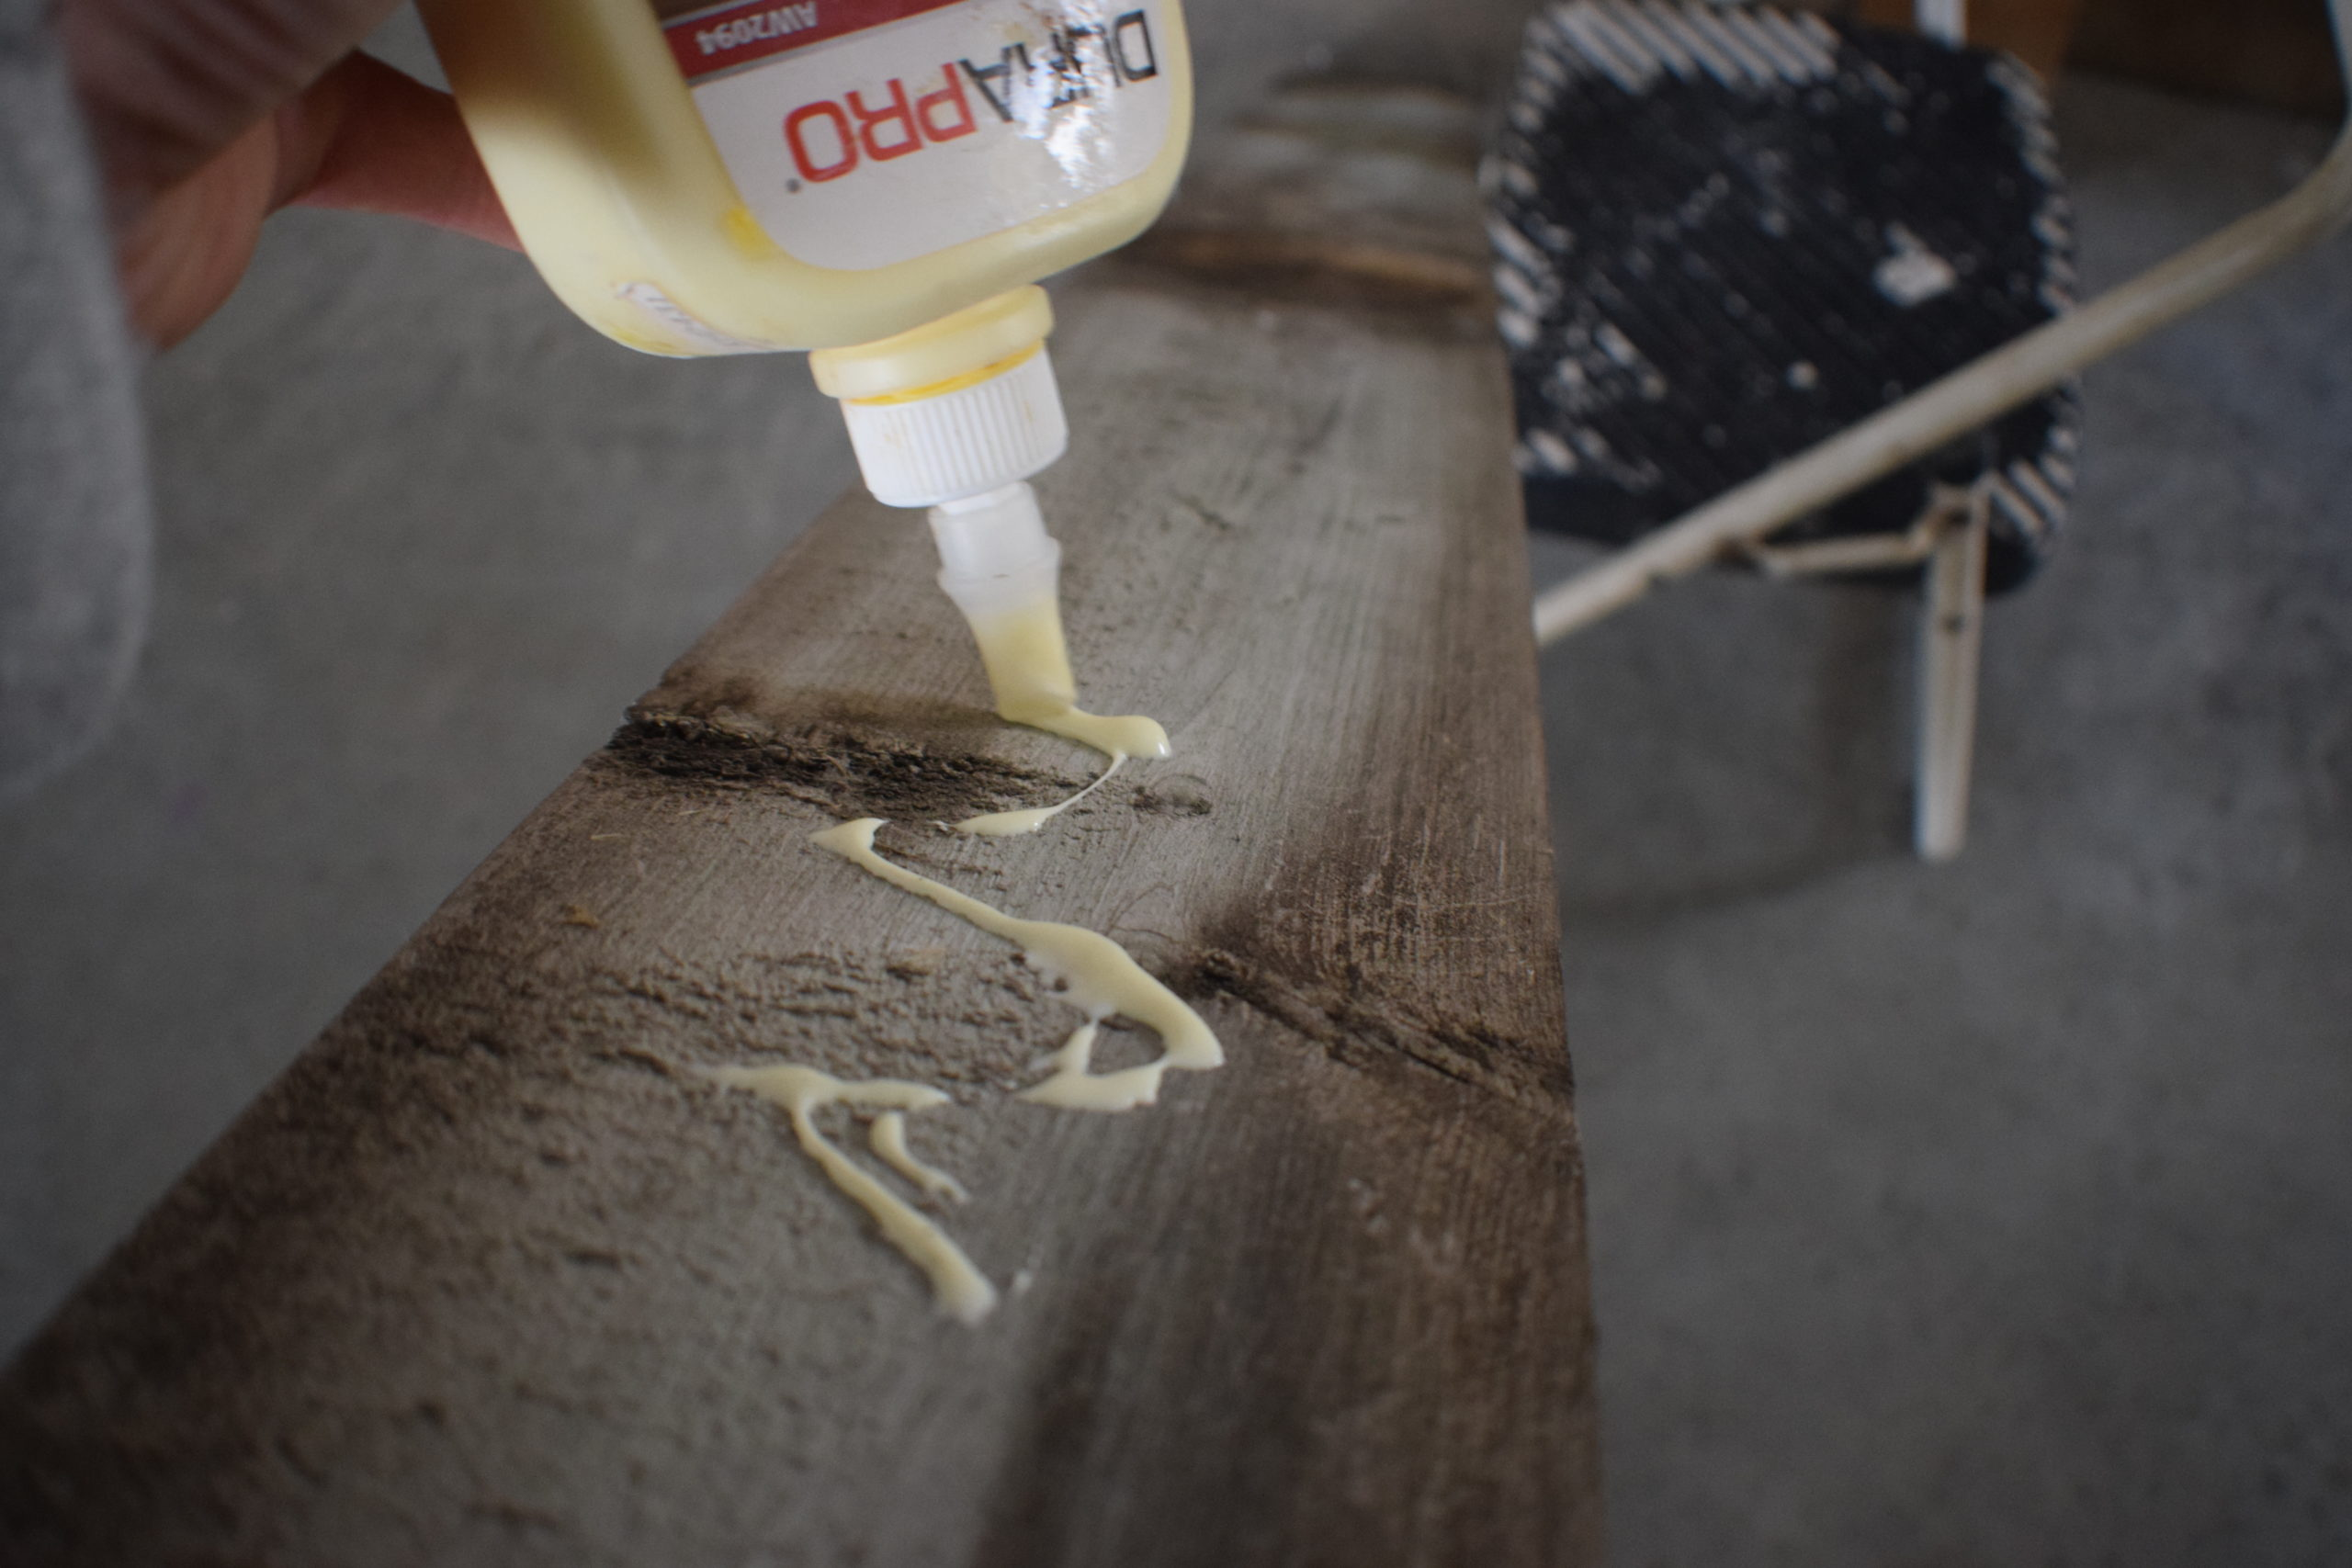 Wood glue being put on the back of a board in zig zag motion